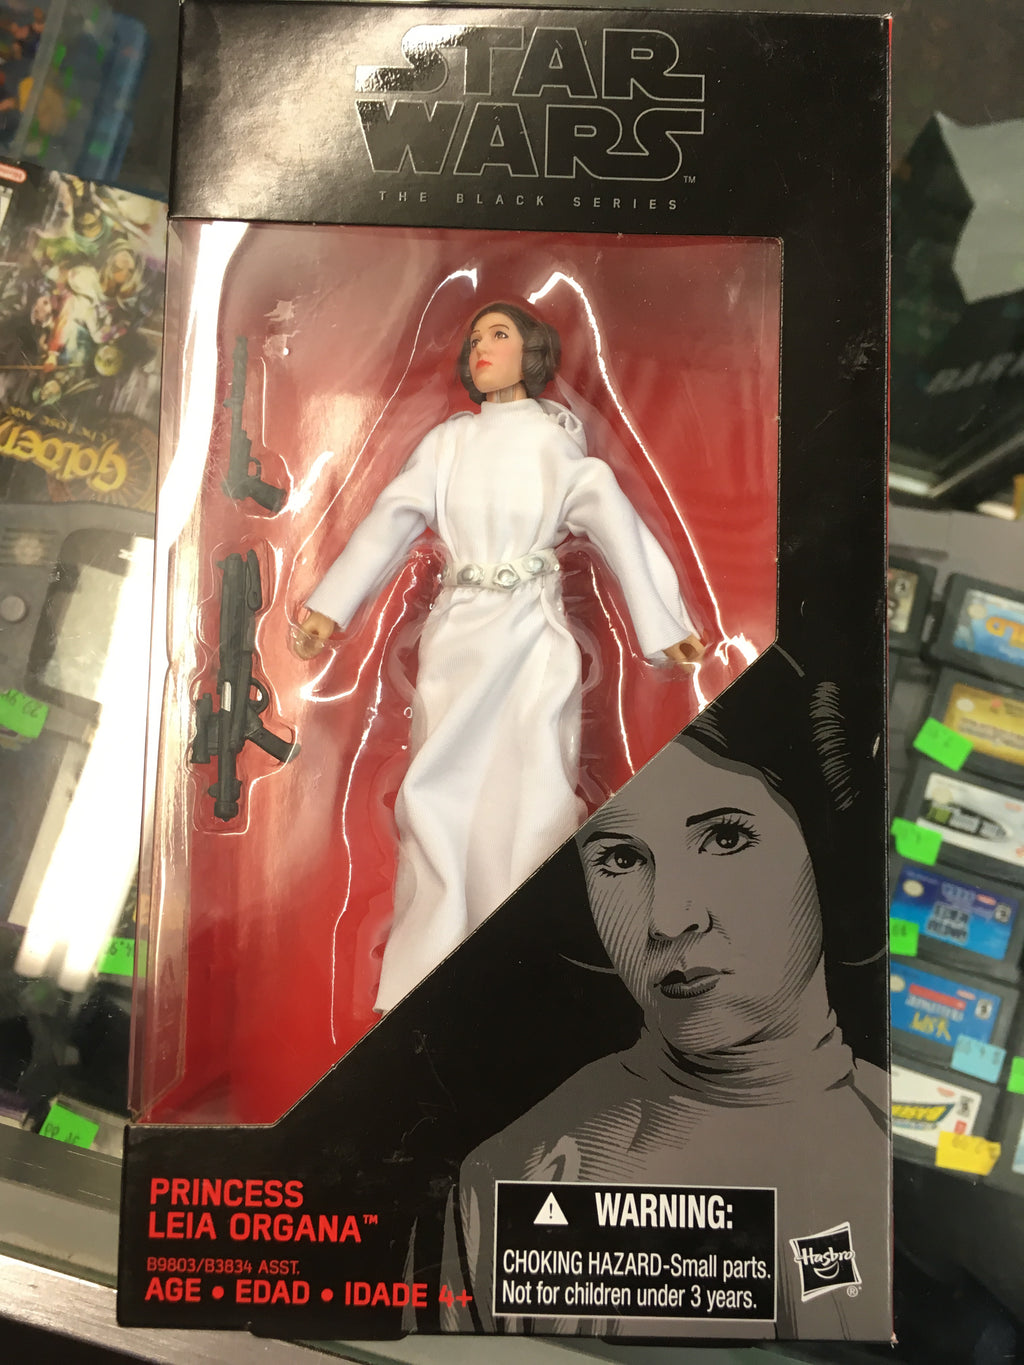 Star Wars Black Series Princess Leia Organa